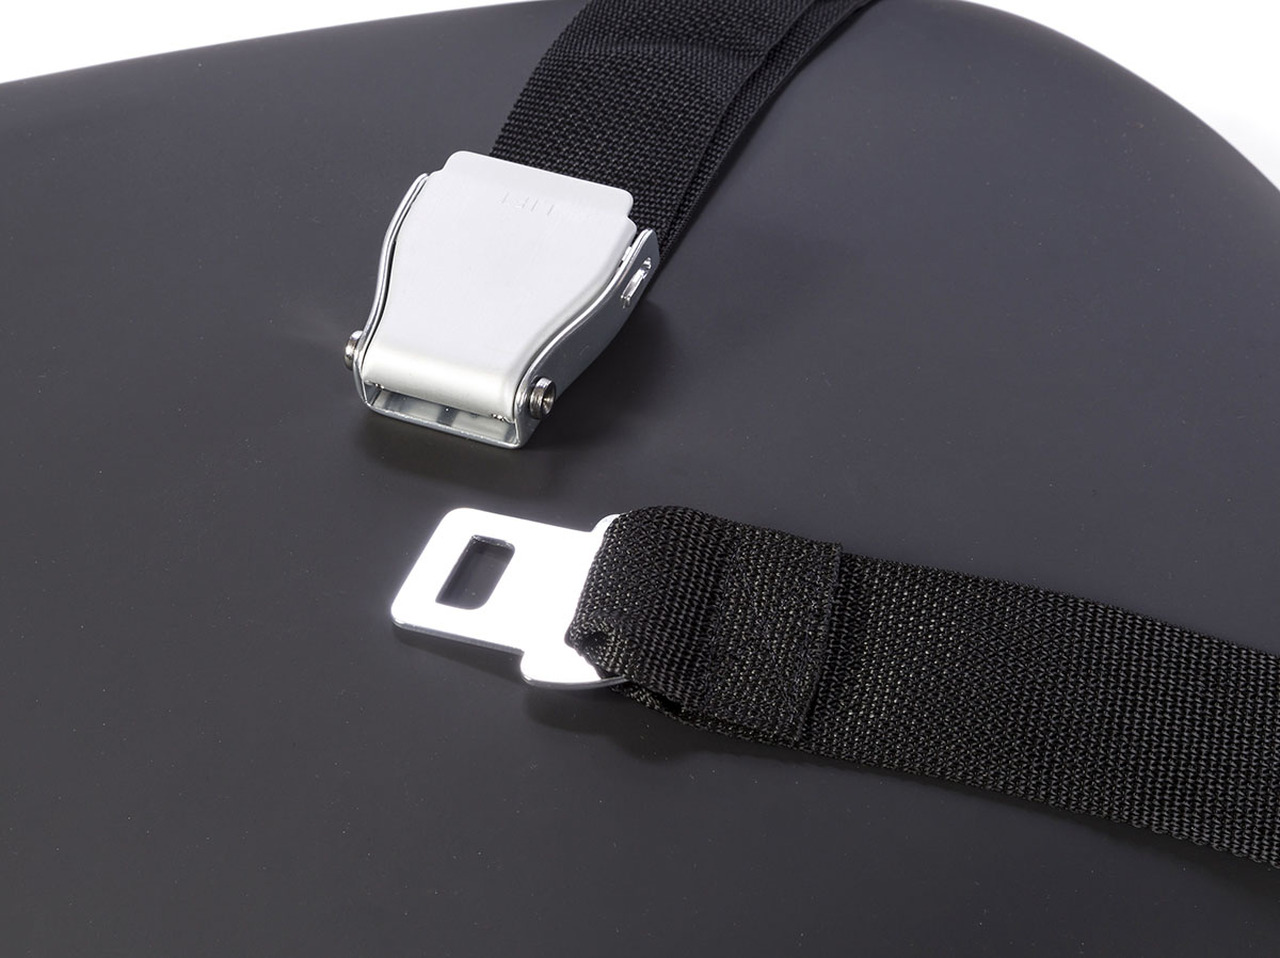 Accessory for EasyStand - Positioning Belt w/Airline Style Buckle